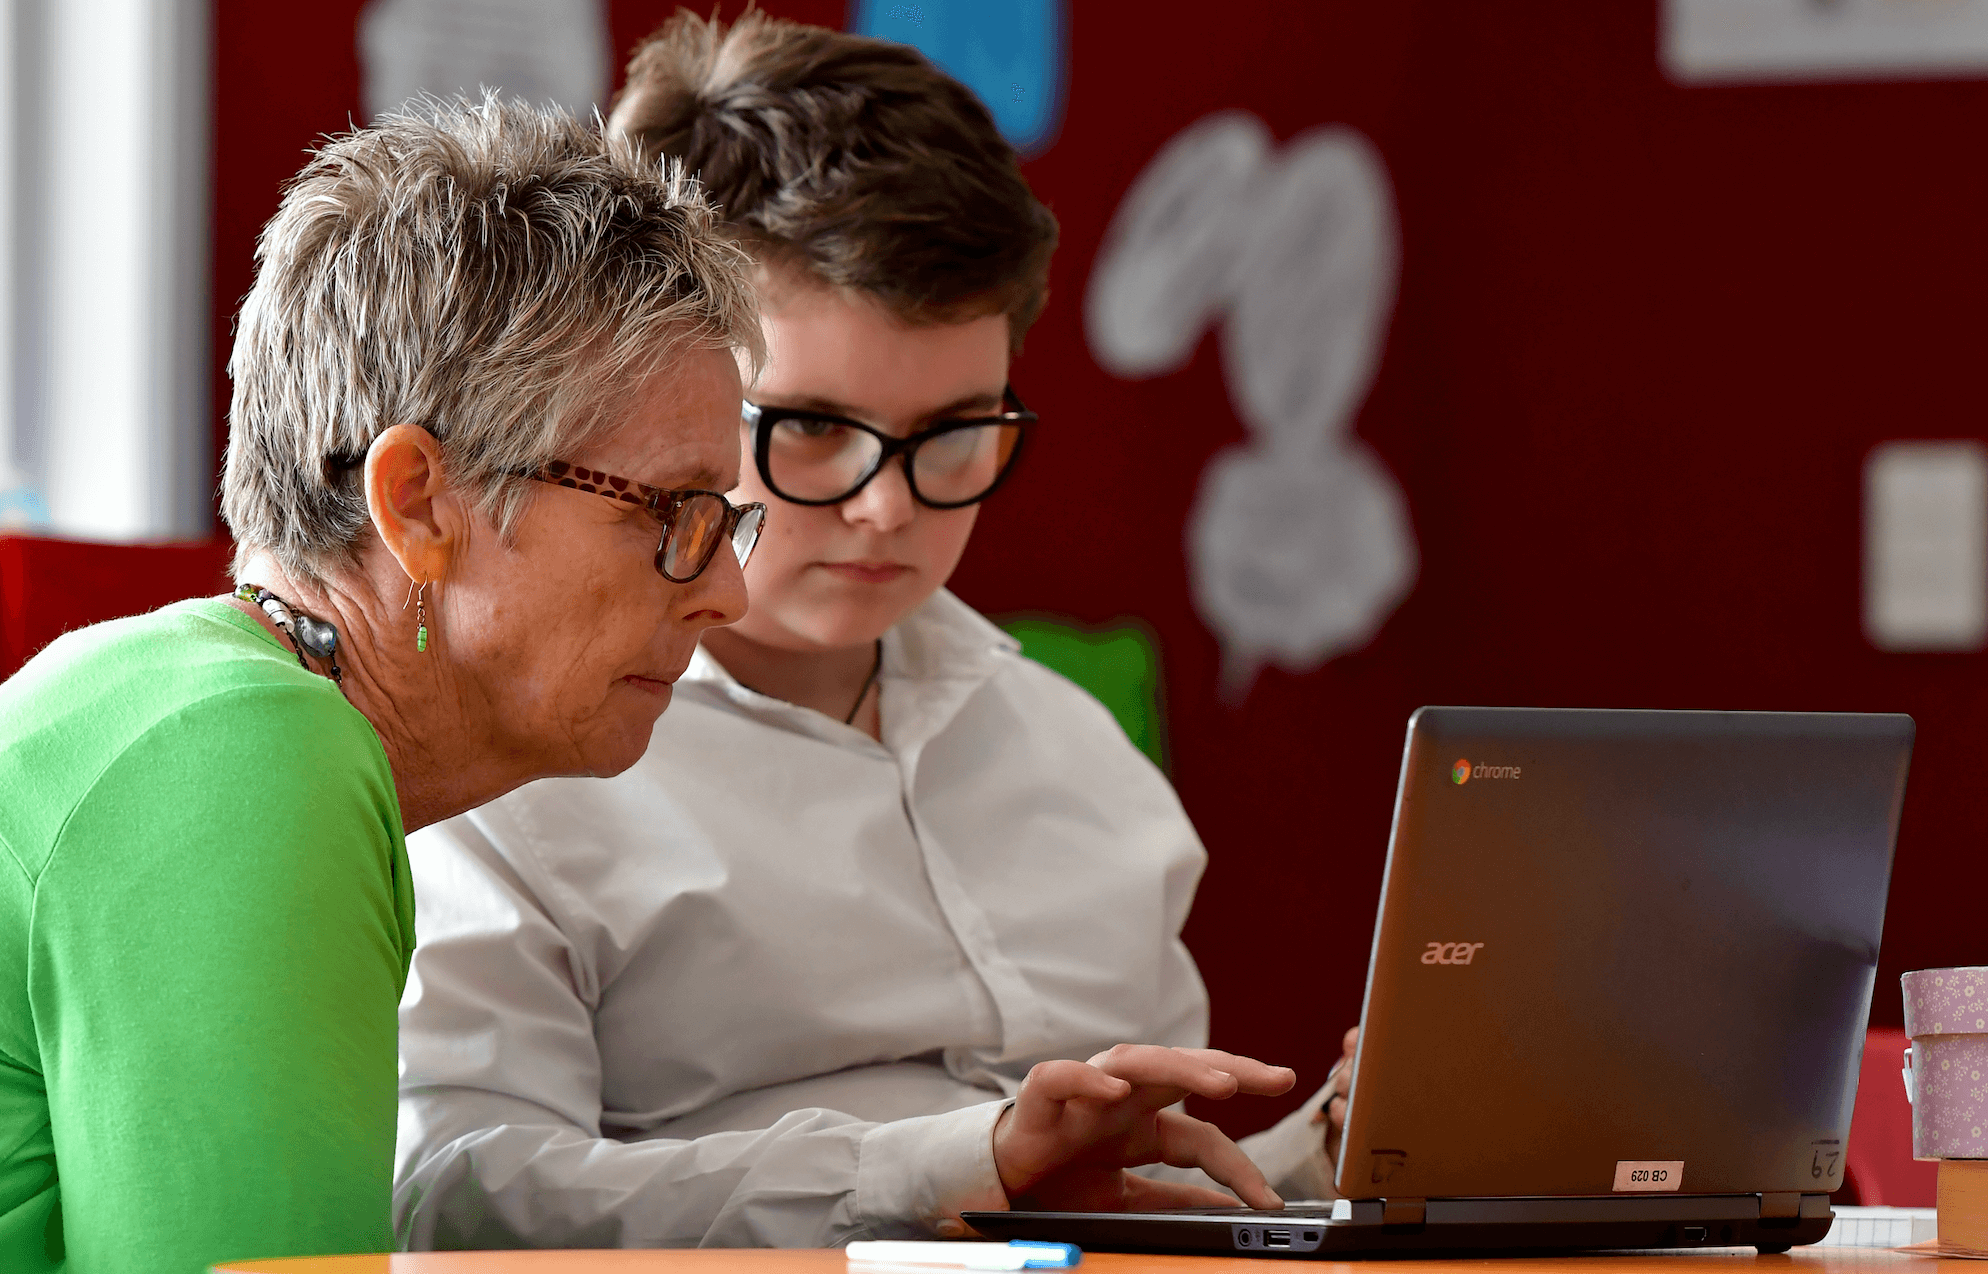 Male student and female teacher working together on laptop